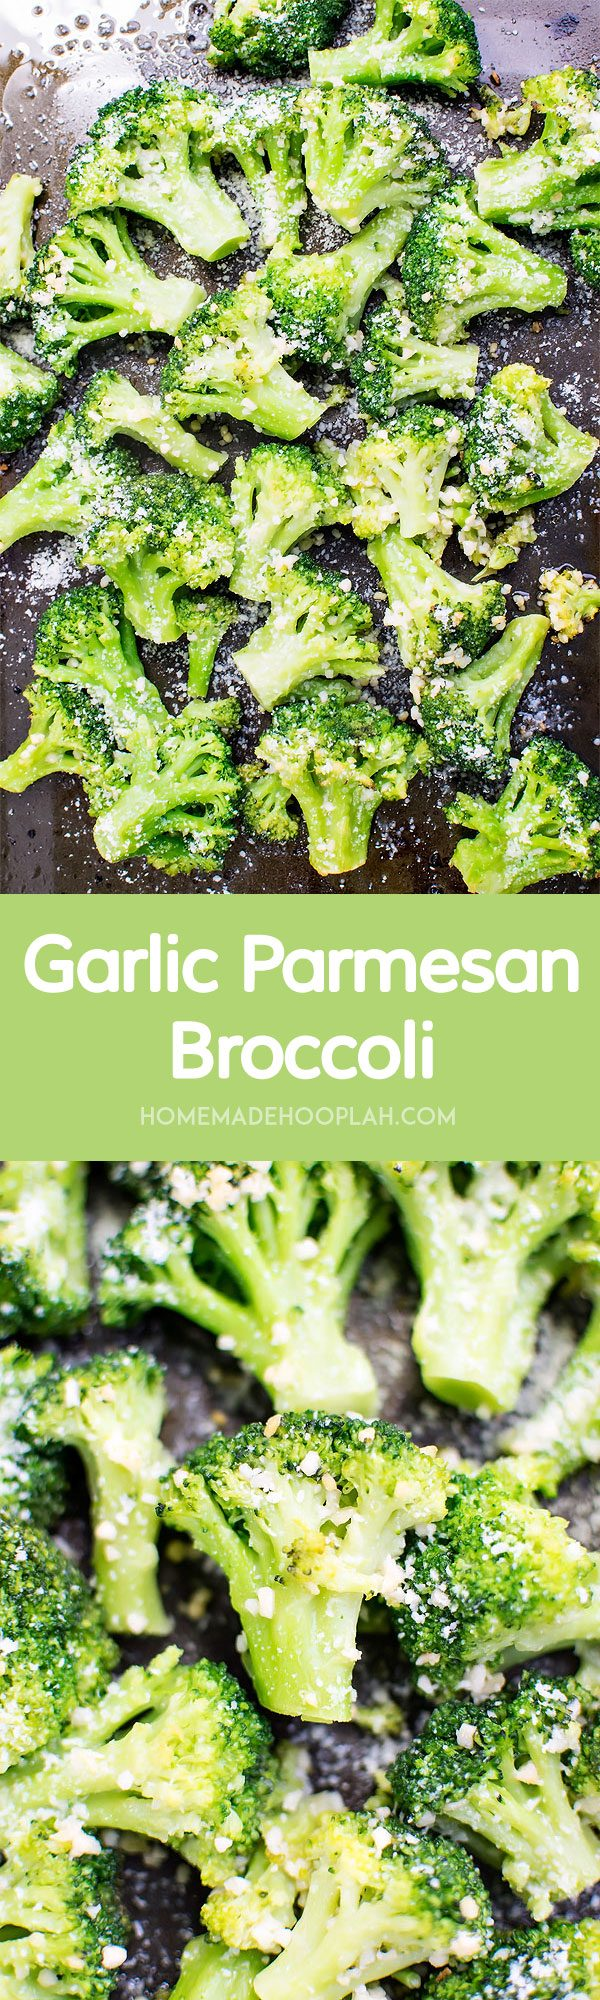 Garlic Parmesan Broccoli! The perfect side dish to any meal! Broccoli baked with olive oil and garlic then sprinkled with parmesan cheese. Only 150 calories per serving! | HomemadeHooplah.com